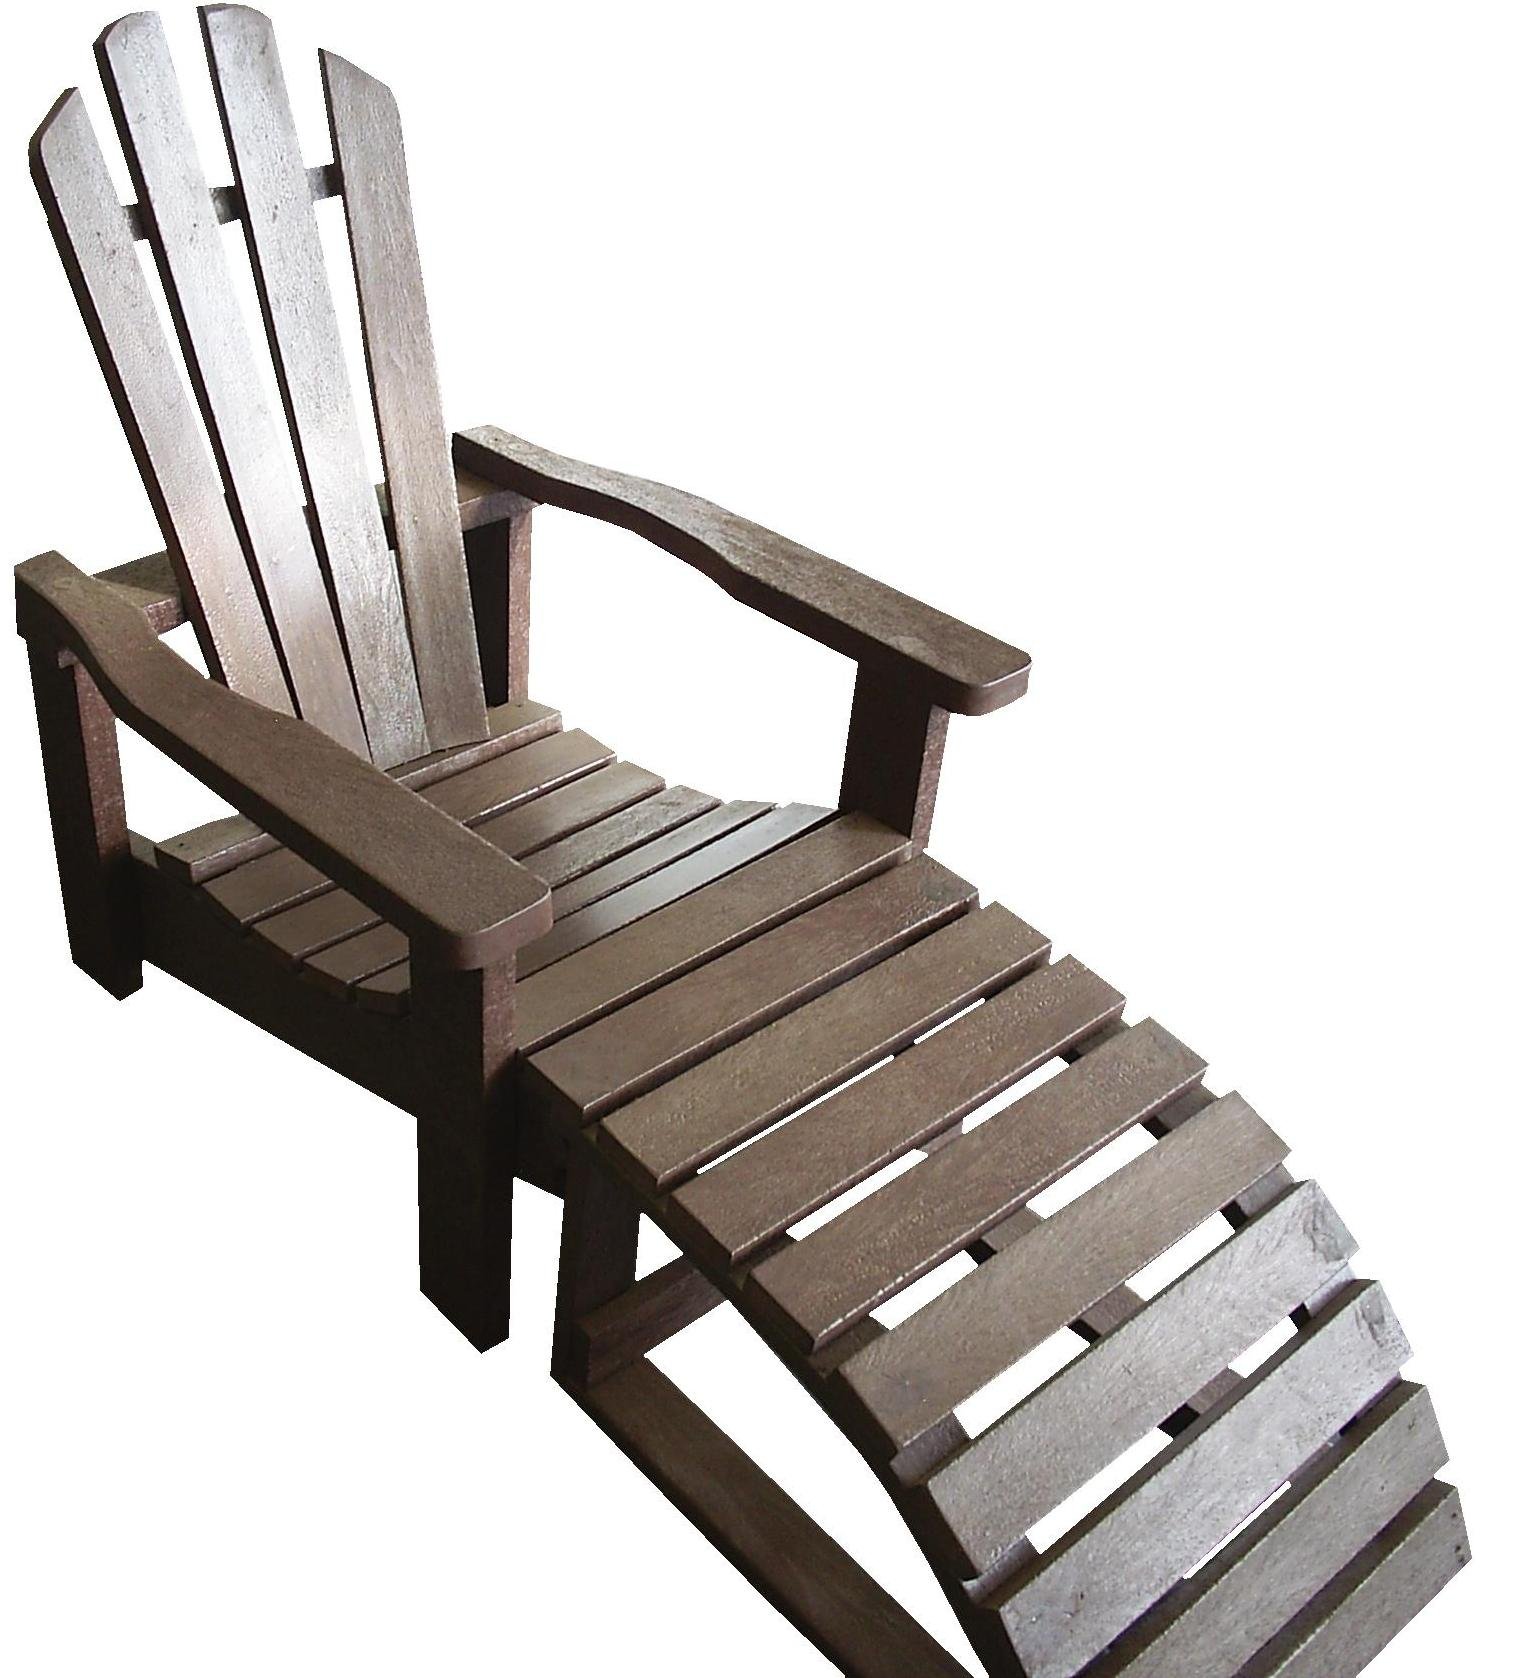 Adderon deck chair